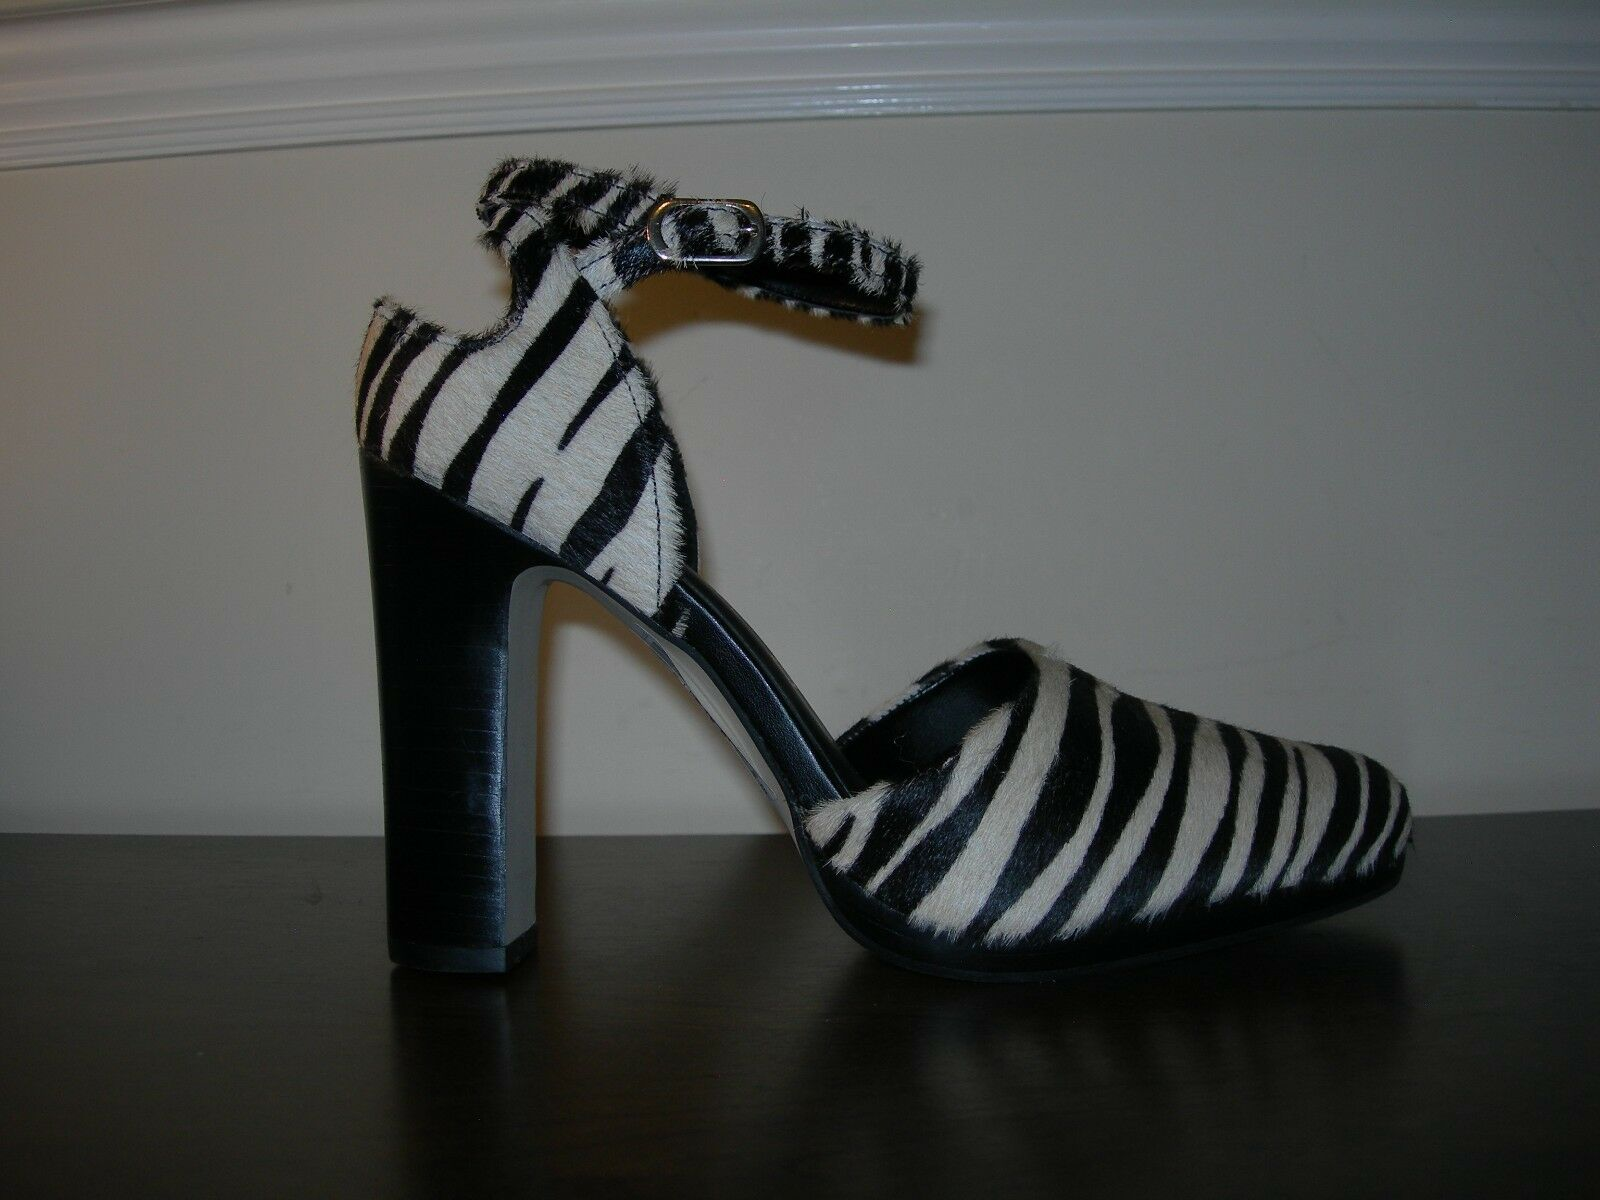 NEXT SIGNATURE damen COURT schuhe HEELS ANIMAL PONY PRINT PONY ANIMAL HAIR EU 38   UK 5 449154